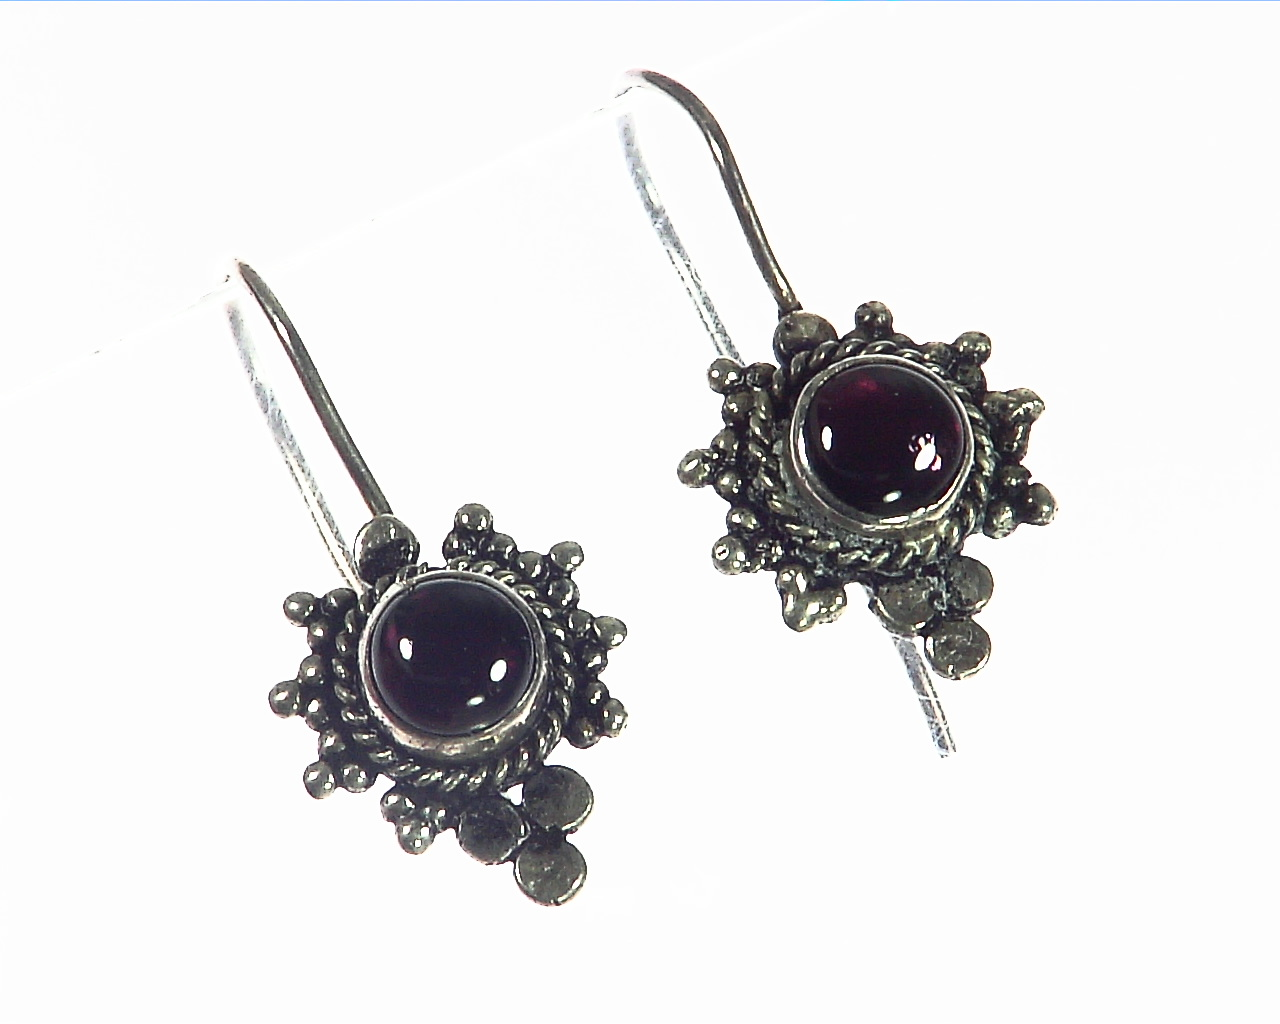 Garnet Cabasson Set in Sterling Silver Earring, 803